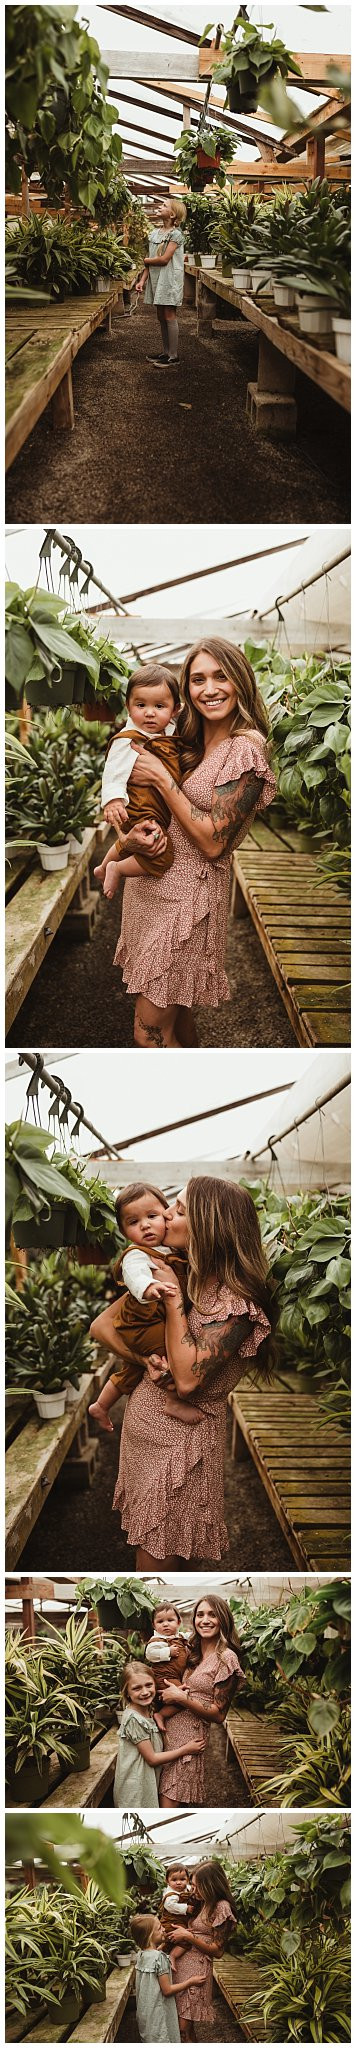 Mommy and Me Greenhouse Portraits/ San Diego Family Photographer